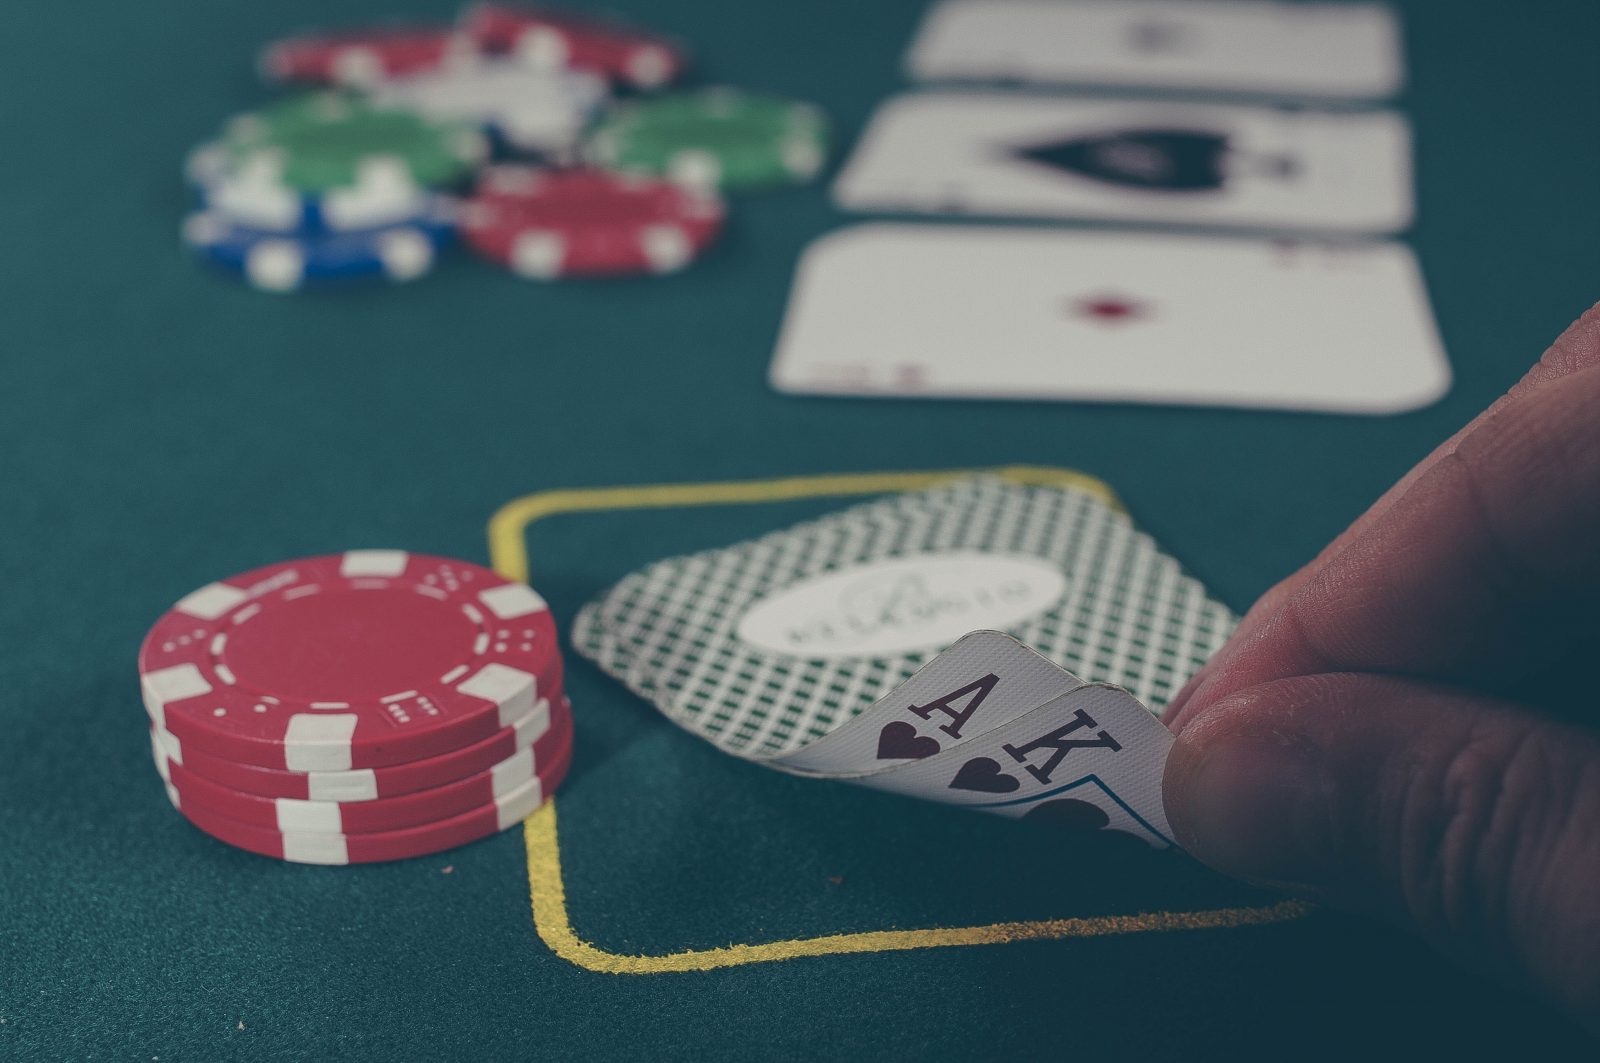 Where to play live poker in Madrid